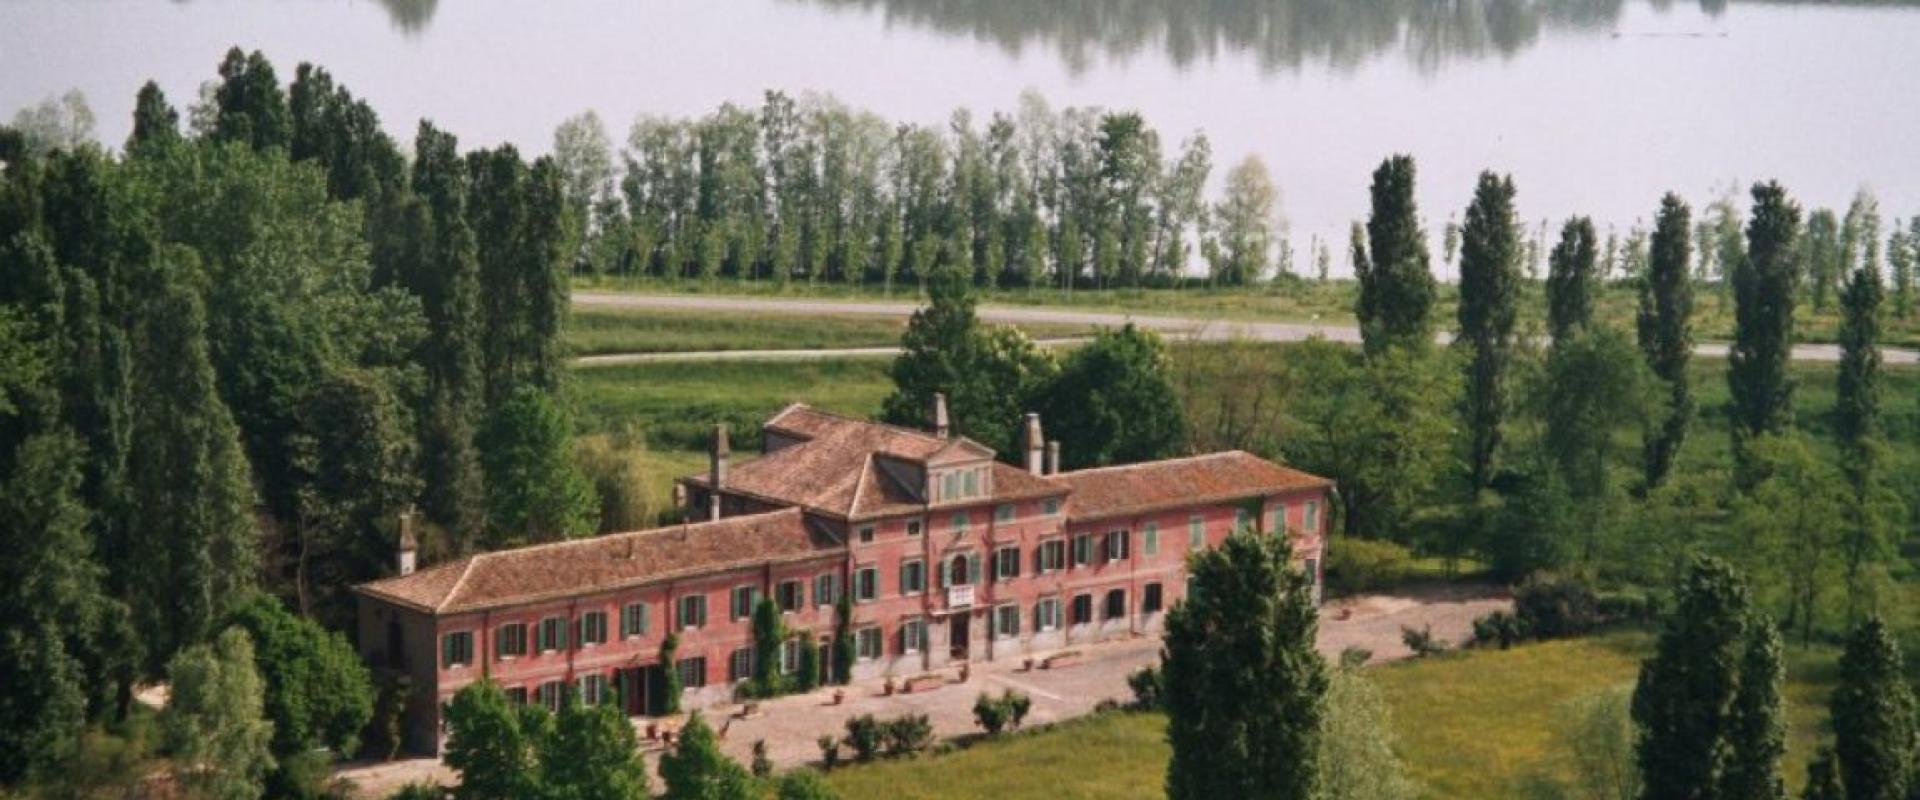 Rural experience in Venetian villa and birdwatching along the Po river